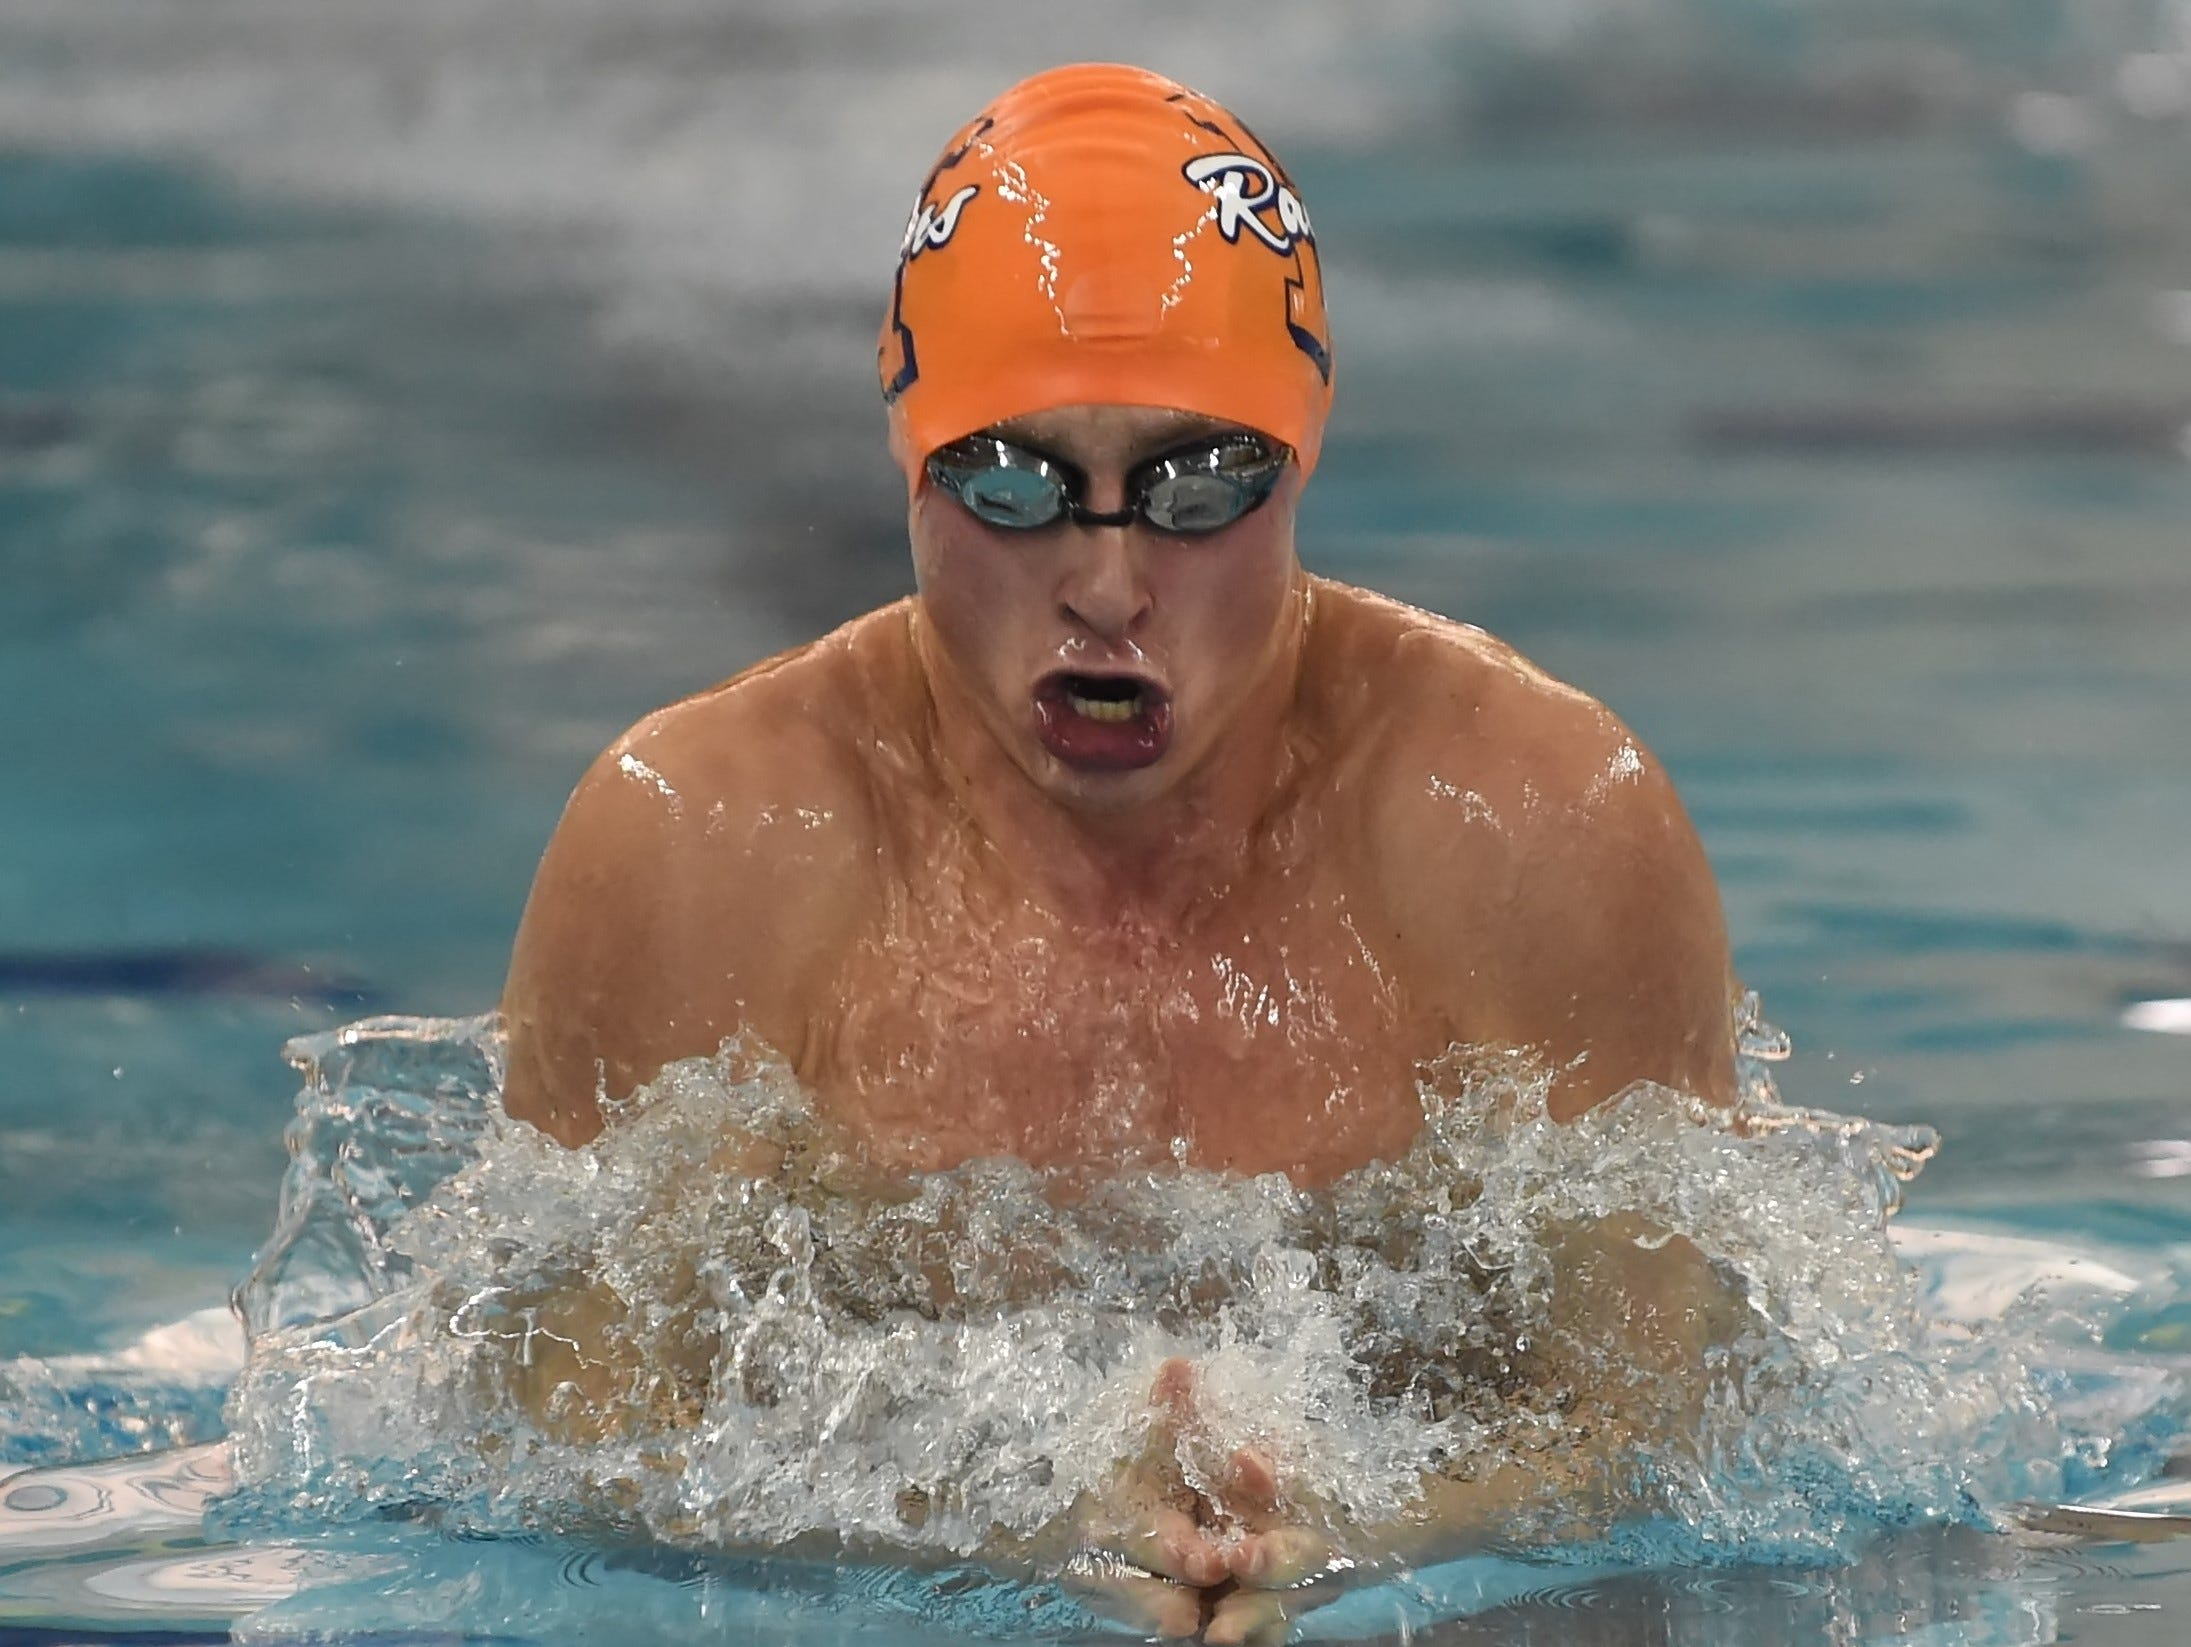 Senior Luke Johnson of Harrison cuts through the water Saturday in the North Central Conference Swimming and Diving Championships at Purdue.